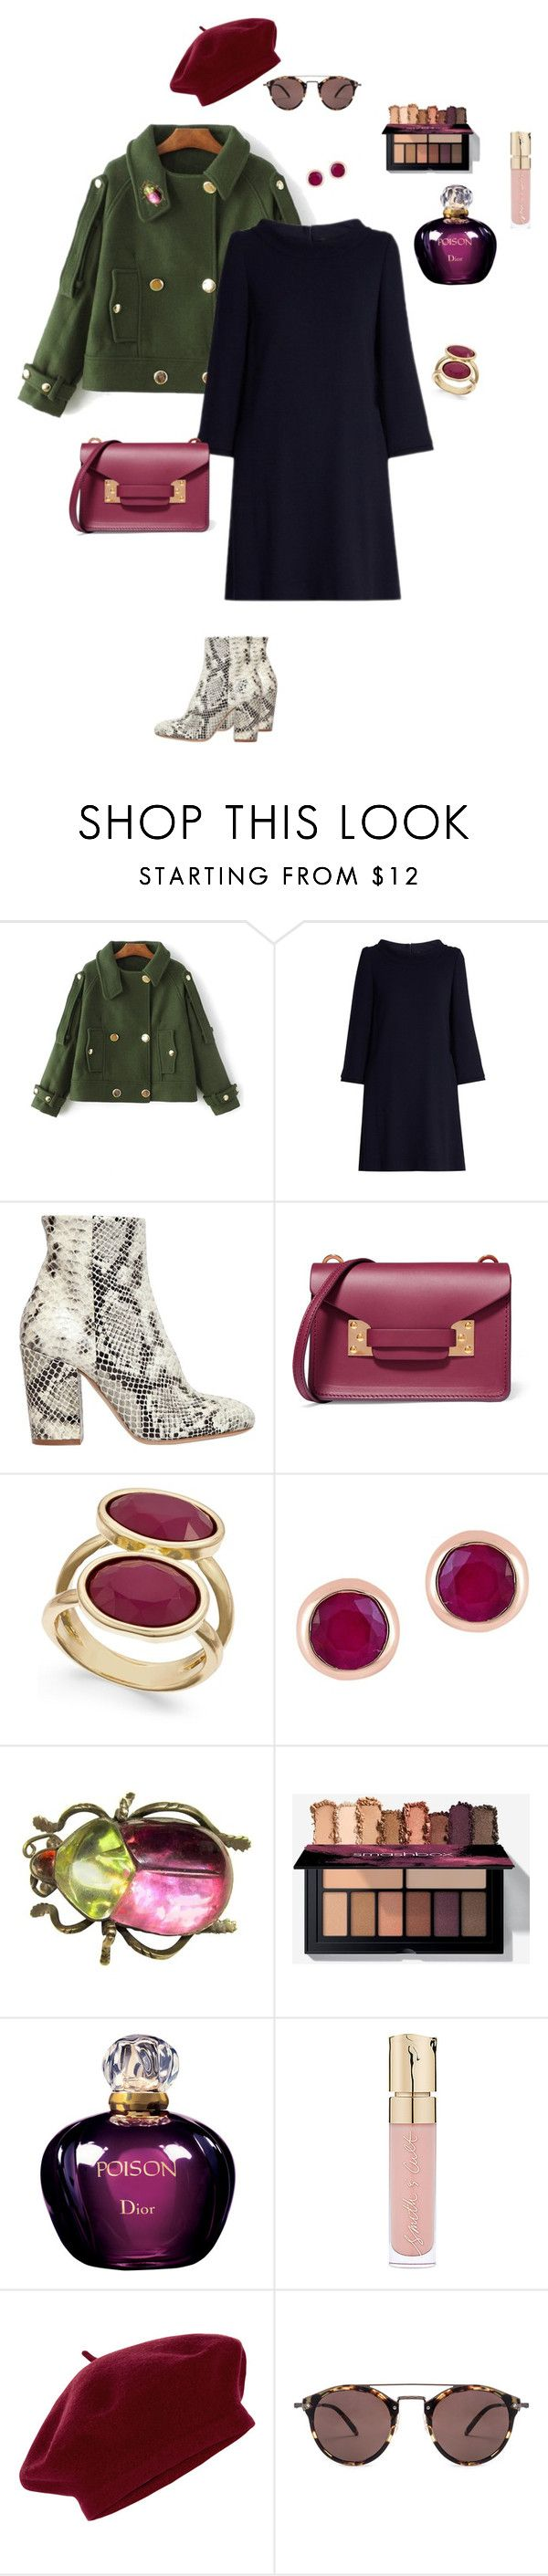 """""""military jacket"""" by ulusia-1 ❤ liked on Polyvore featuring Goat, Strategia, Sophie Hulme, INC International Concepts, Effy Jewelry, Christian Dior, Smith & Cult, Accessorize and Oliver Peoples"""